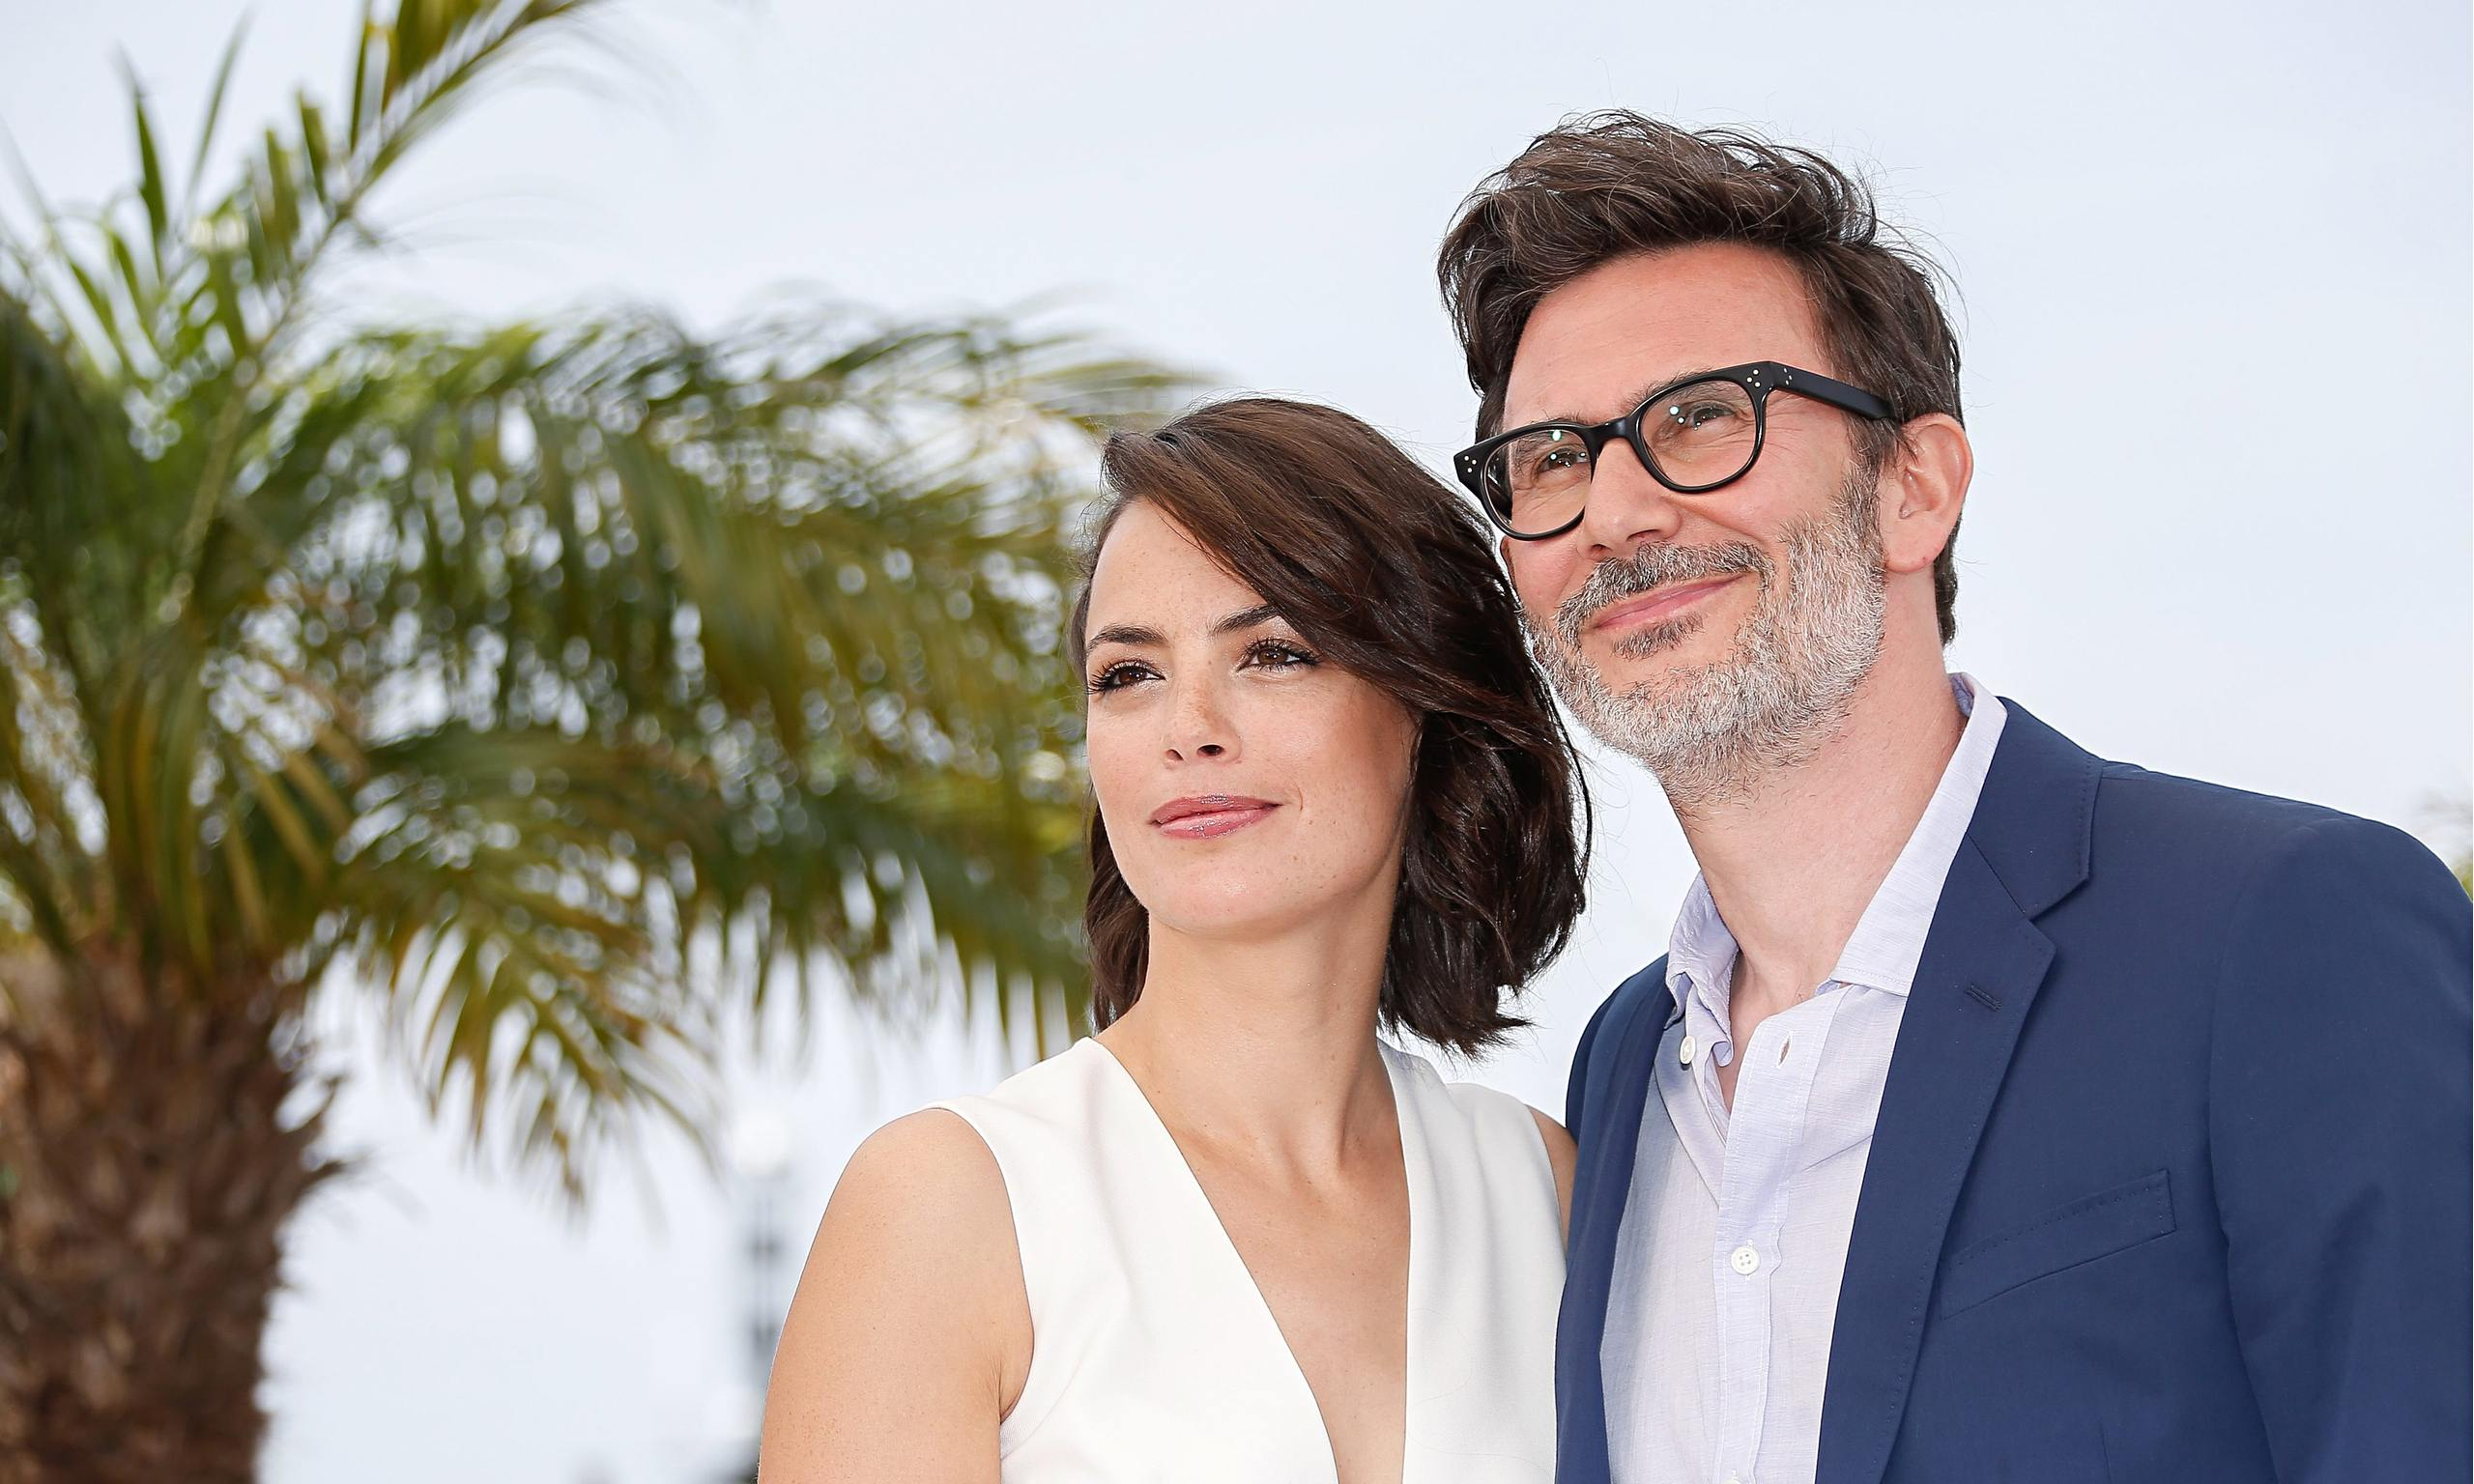 Michel Hazanavicius and Bérénice Bejo during the photocall for The Search at the 67th Cannes film